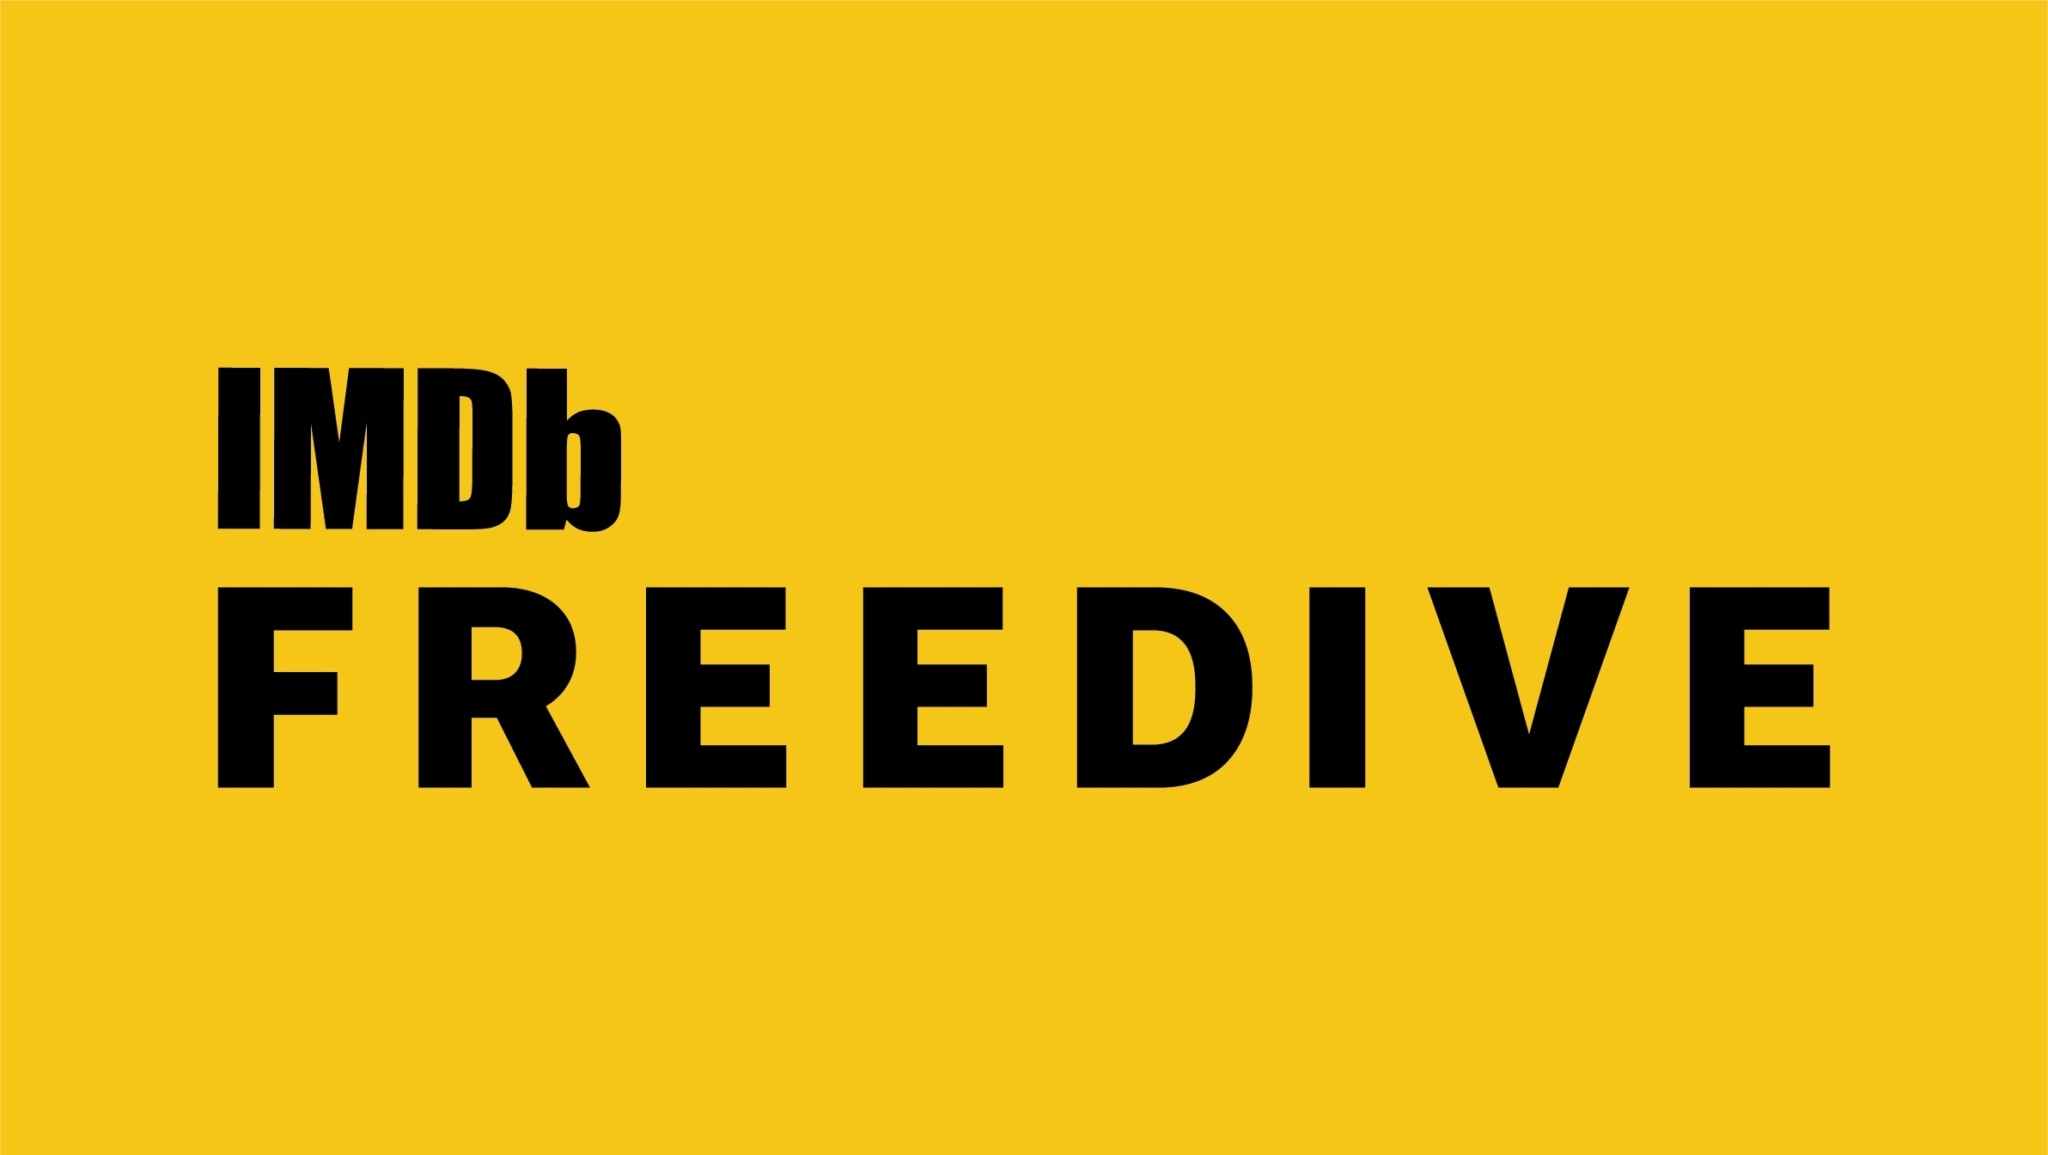 Amazon's IMDb launches Freedive, a free movie and TV streaming service — with ads